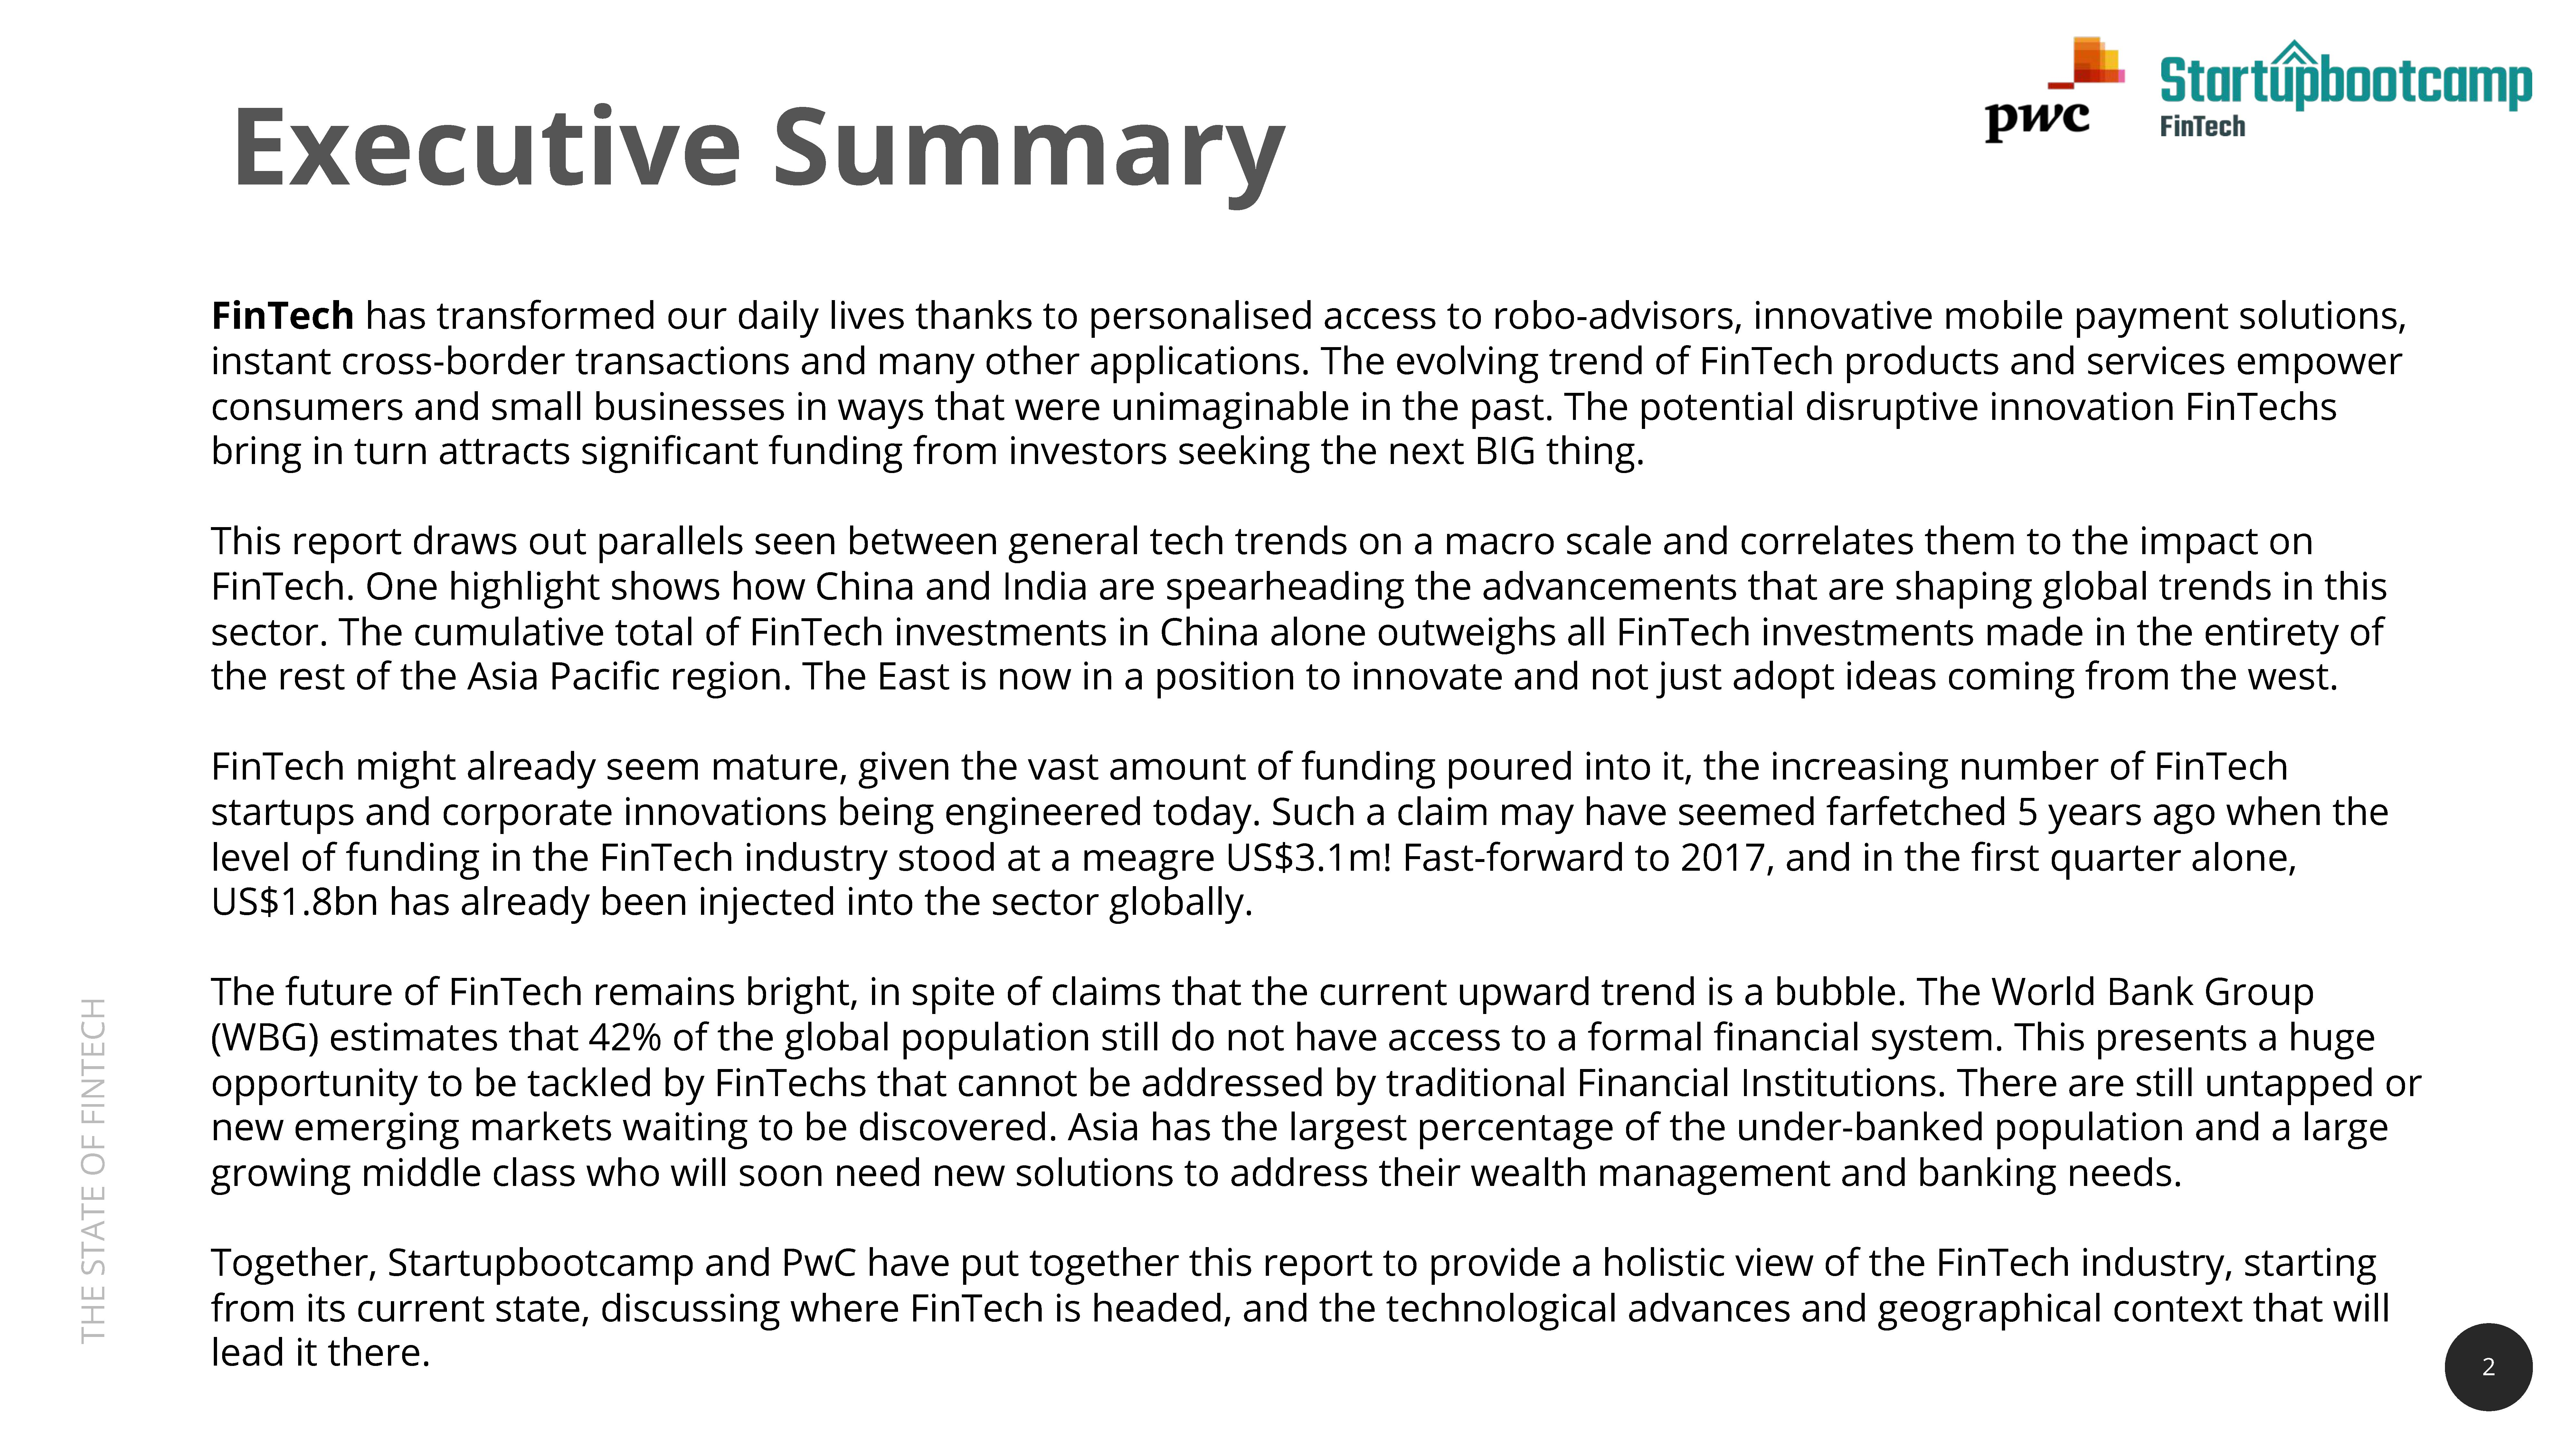 executive summary example for mobile application